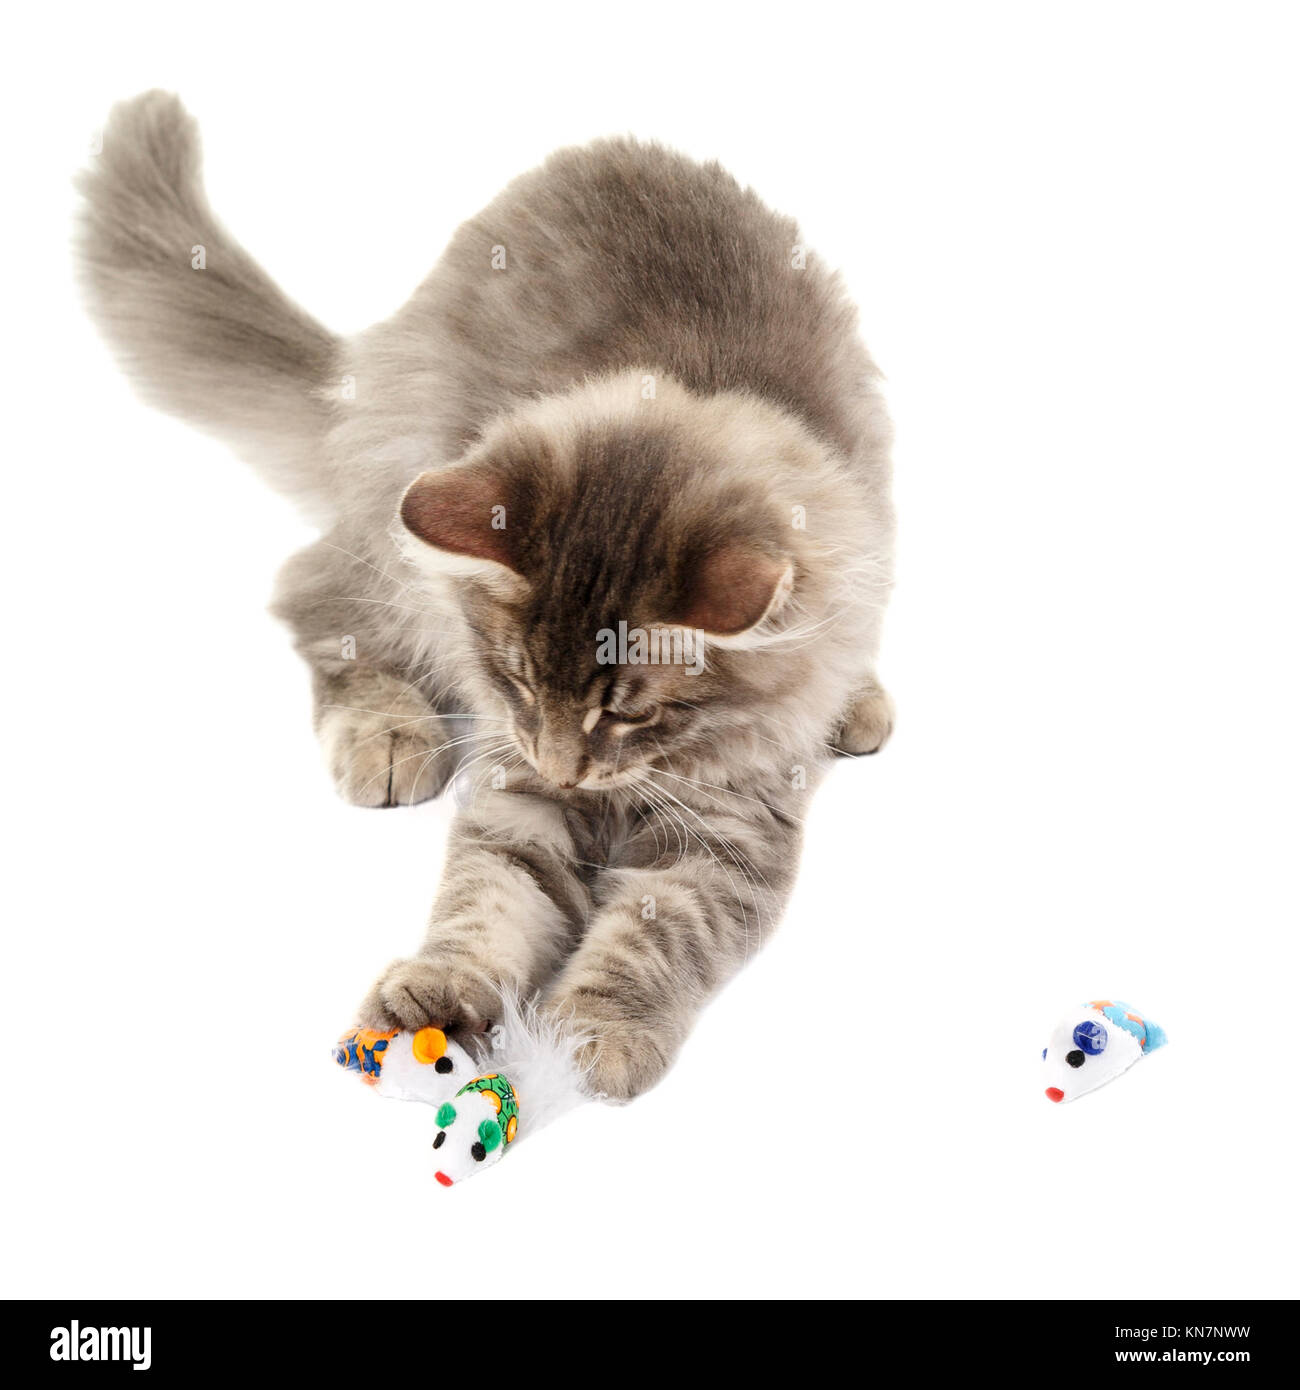 Fluffy Cat Toy Stock Photos Amp Fluffy Cat Toy Stock Images